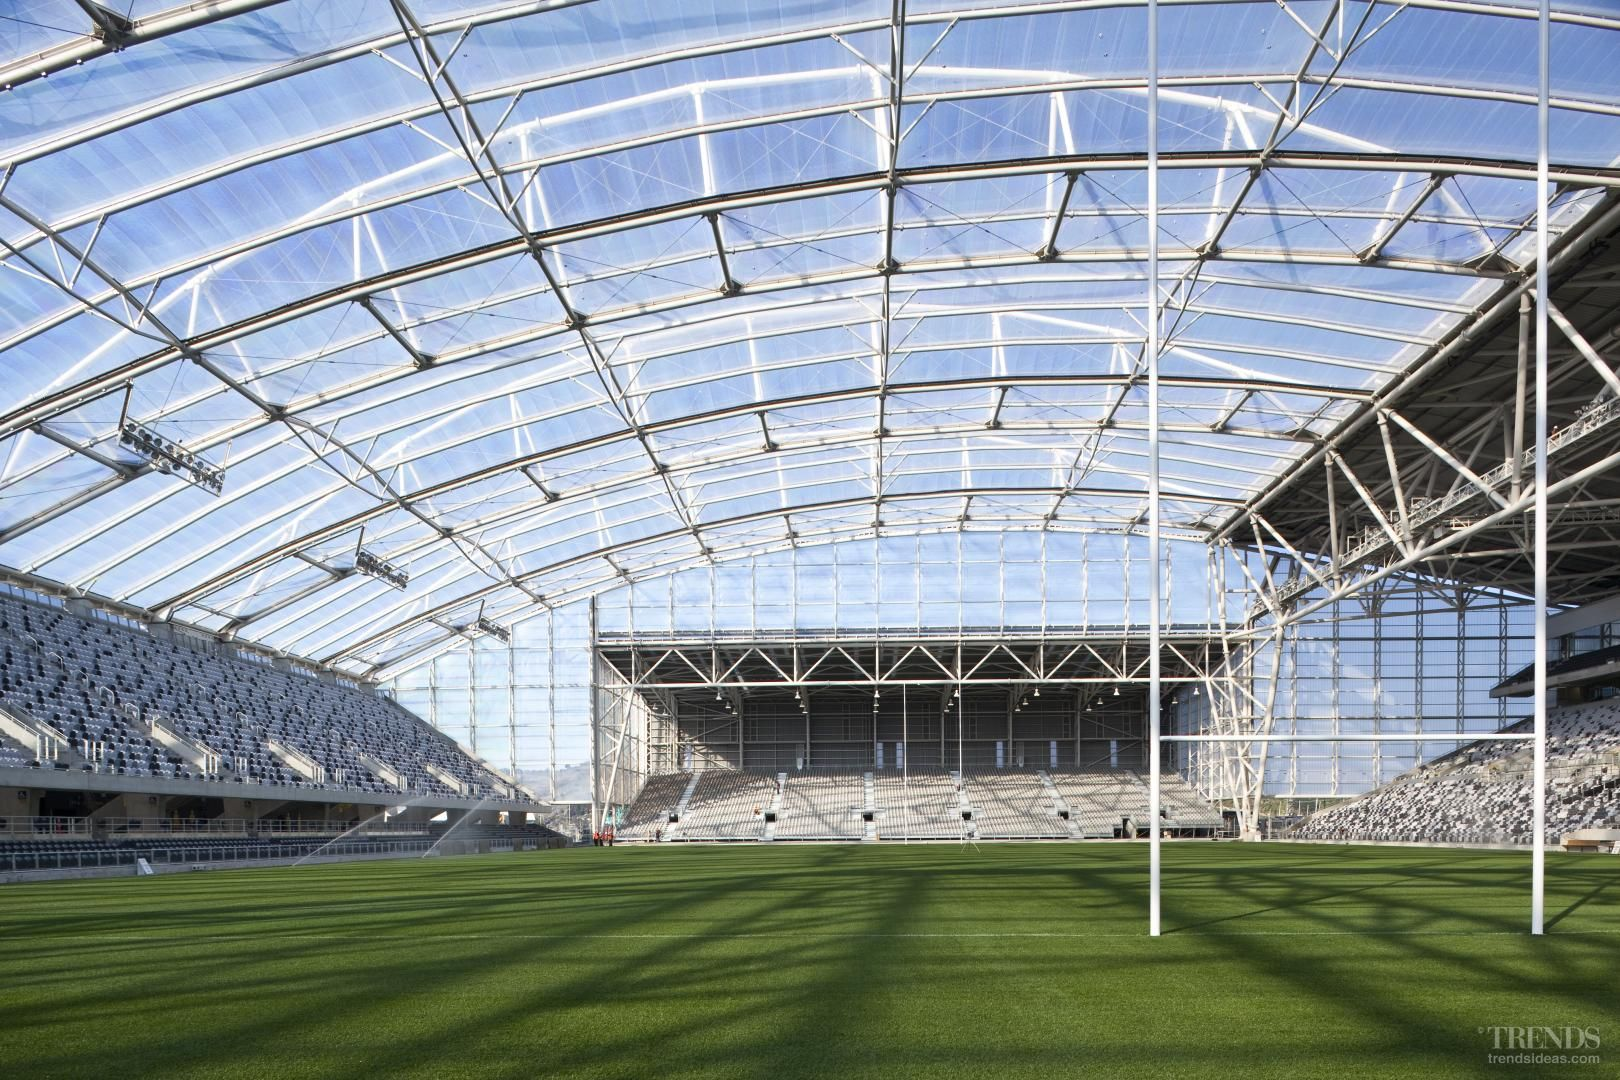 Across The Line Forsyth Barr Stadium Roof Structure Design By Sinclair Knight Merz